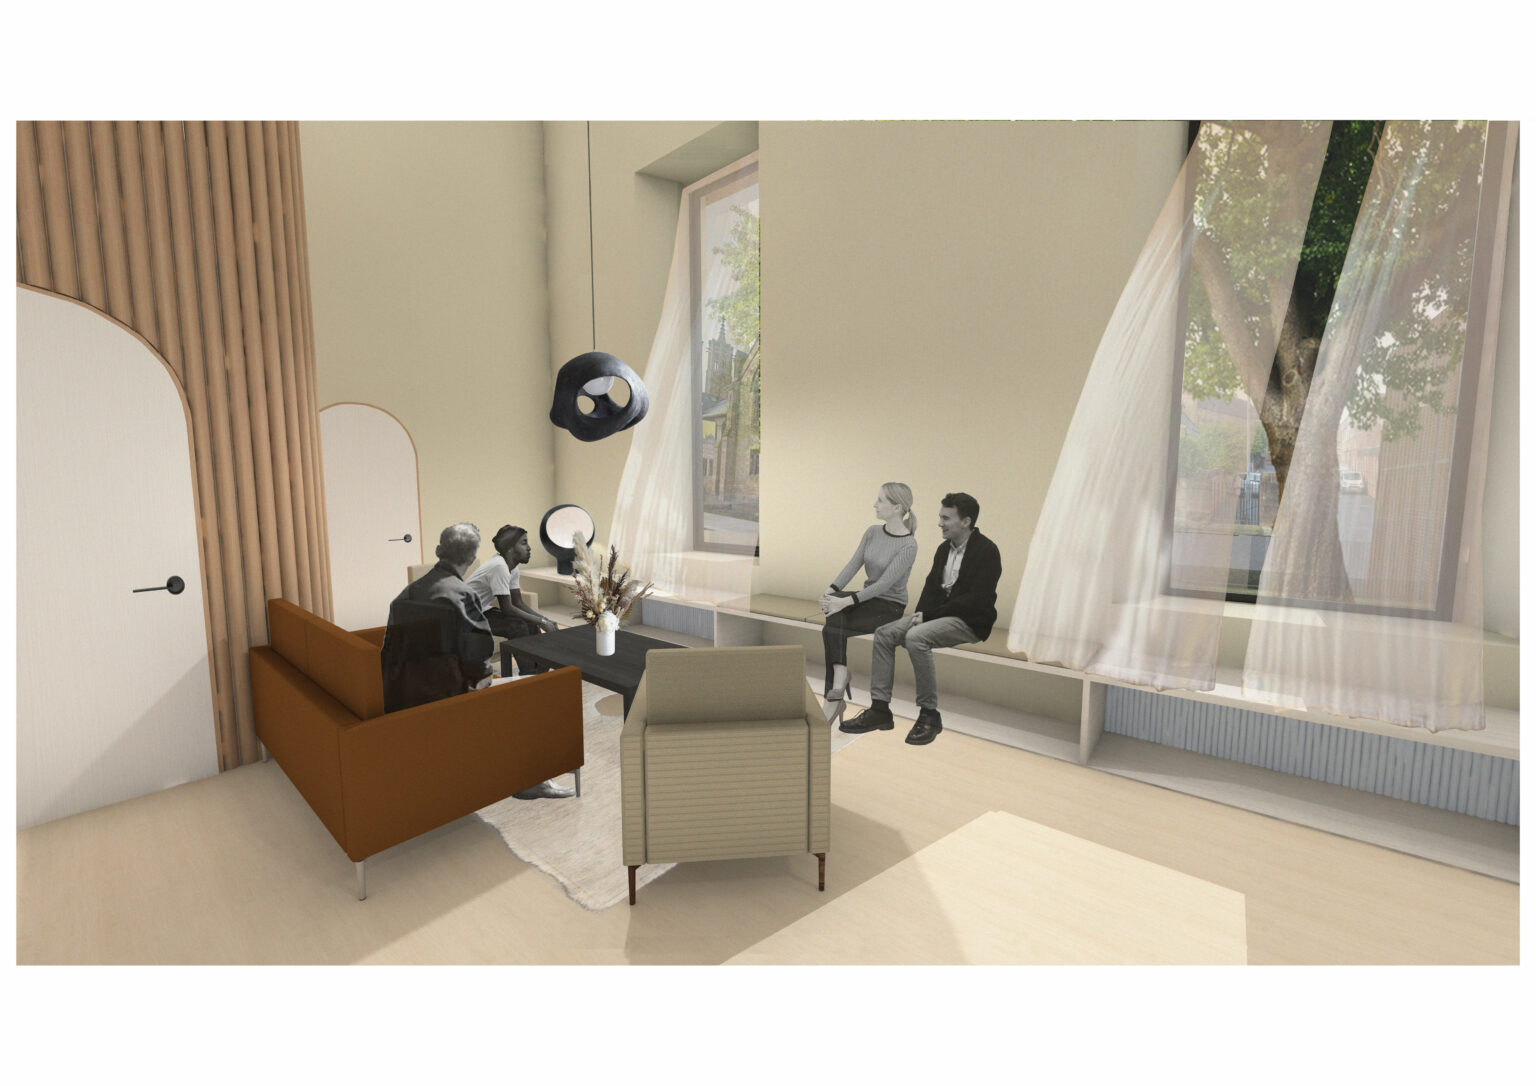 The seating area is where the family can sit with each other as well as a member of staff to discuss the witness cremation. These moments of pause are important as they offer the families spaces to pause and reflect.